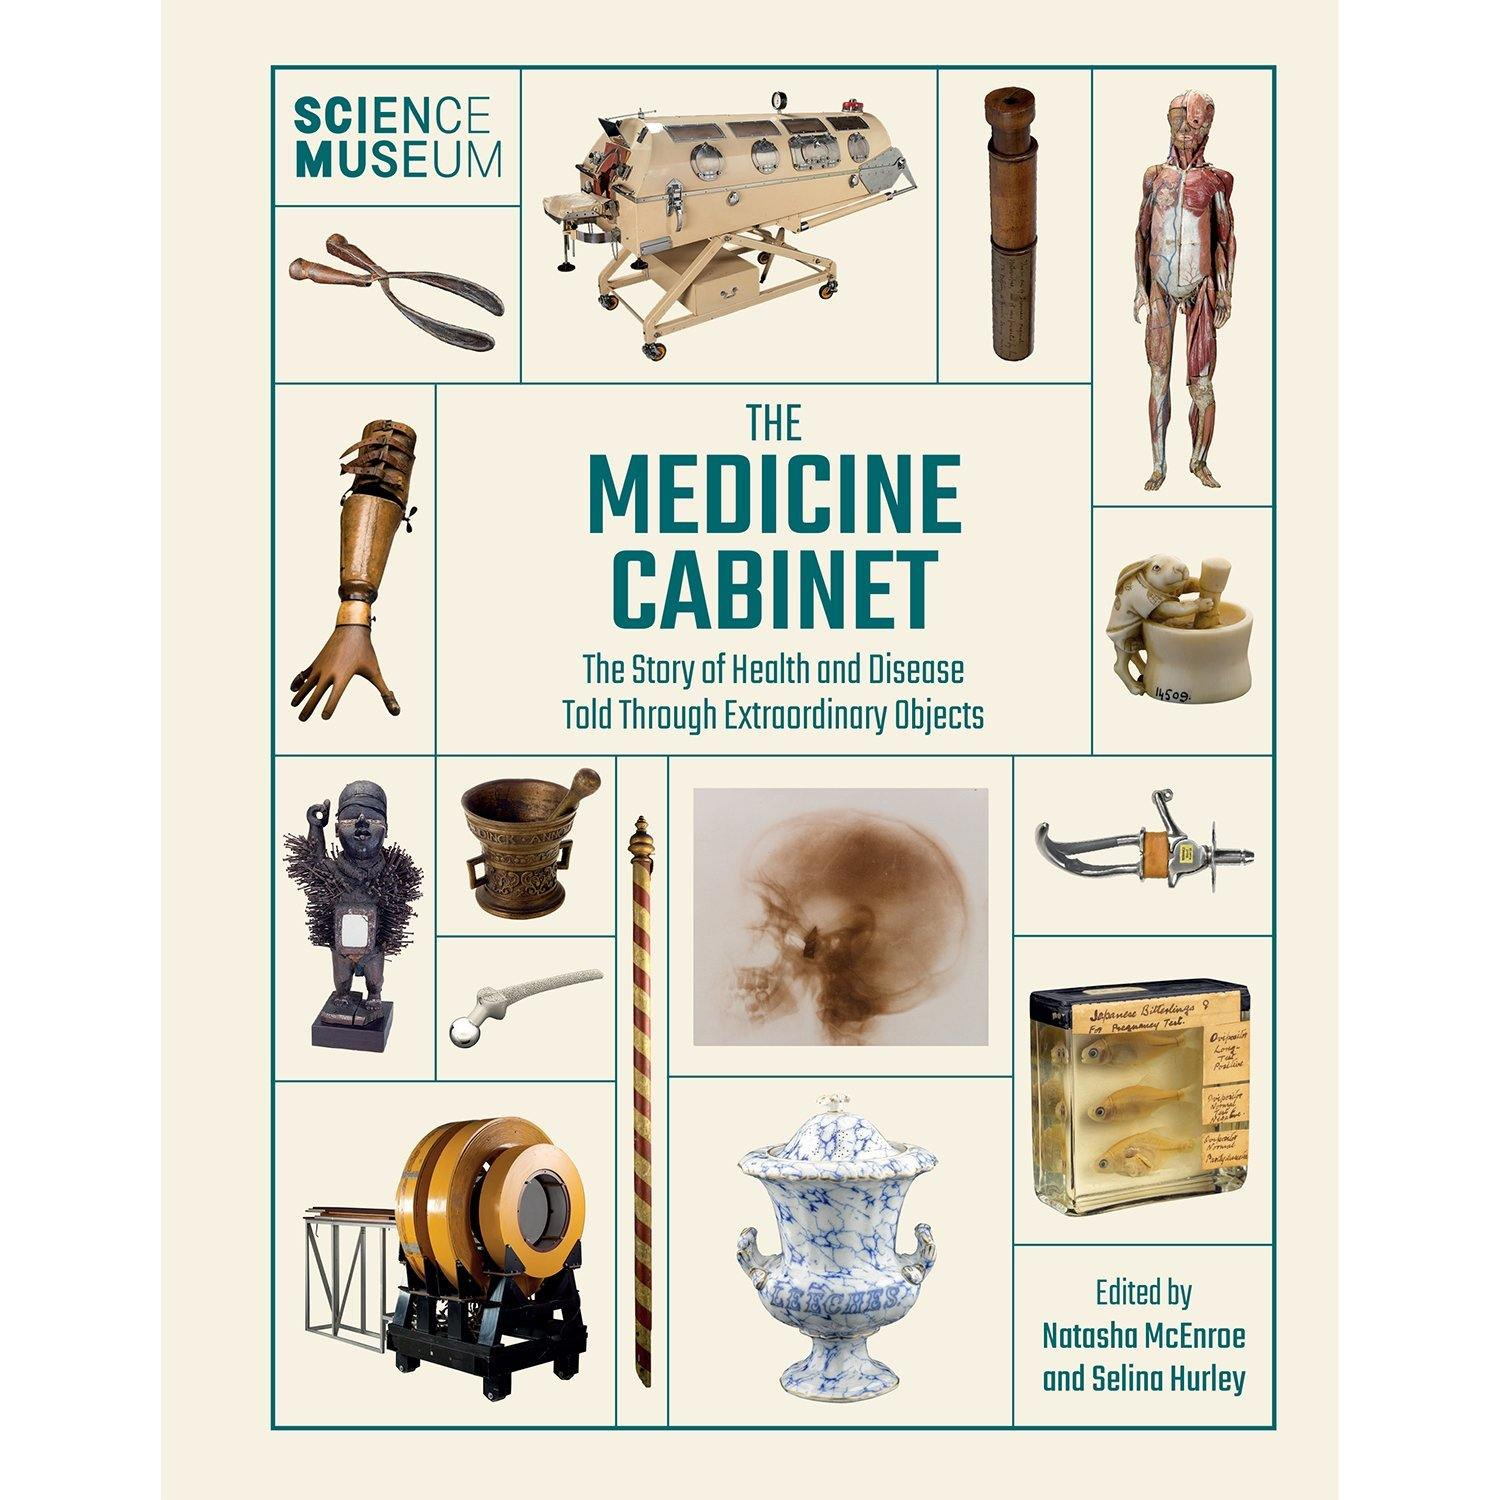 The Medicine Cabinet: The Story of Health and Disease Told Through Extraordinary Objects